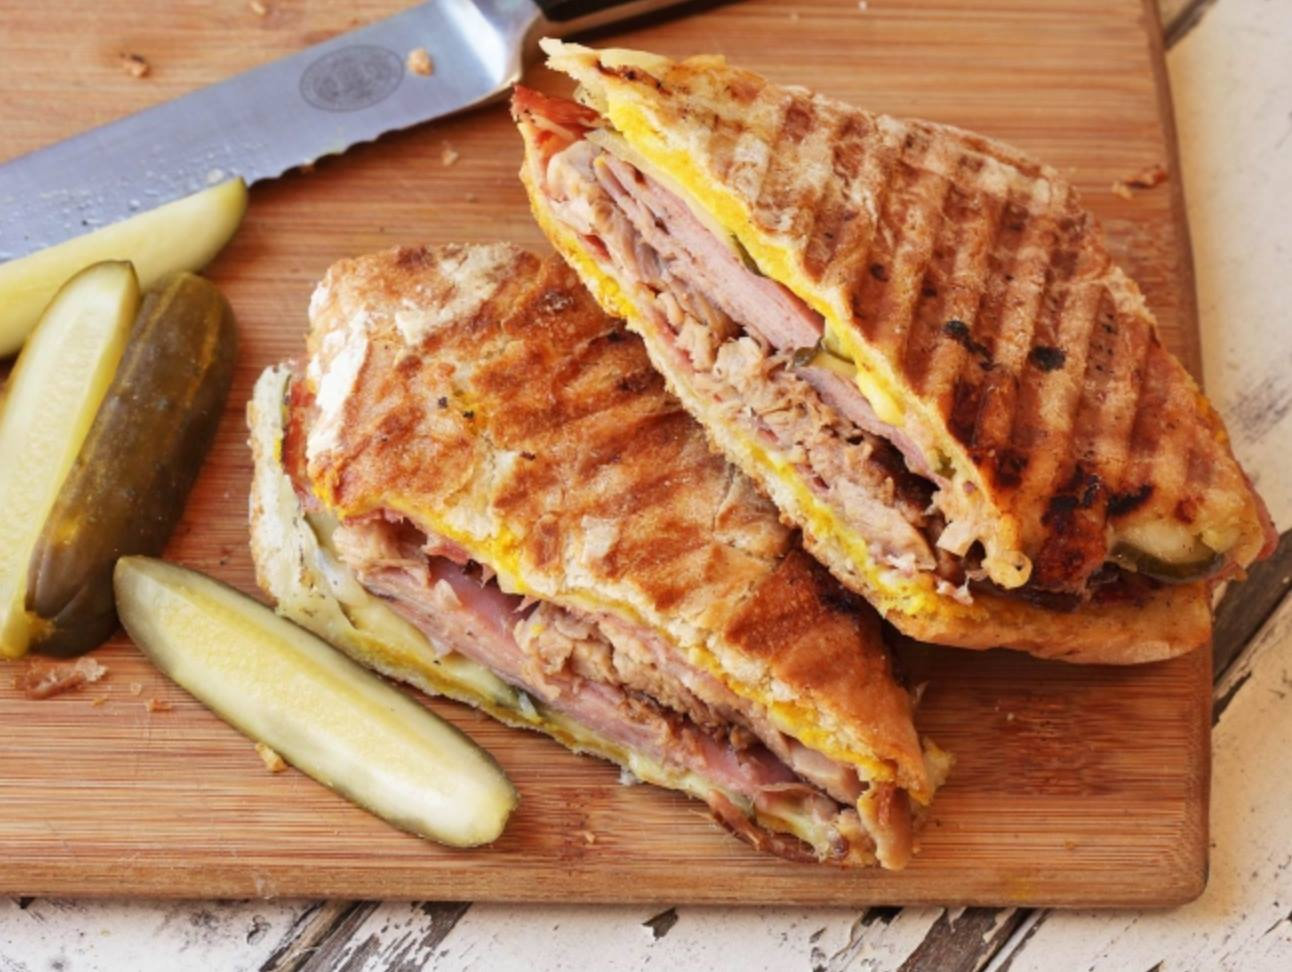 pressed cuban sandwich with mustard on a wood cutting board with a pickle spear